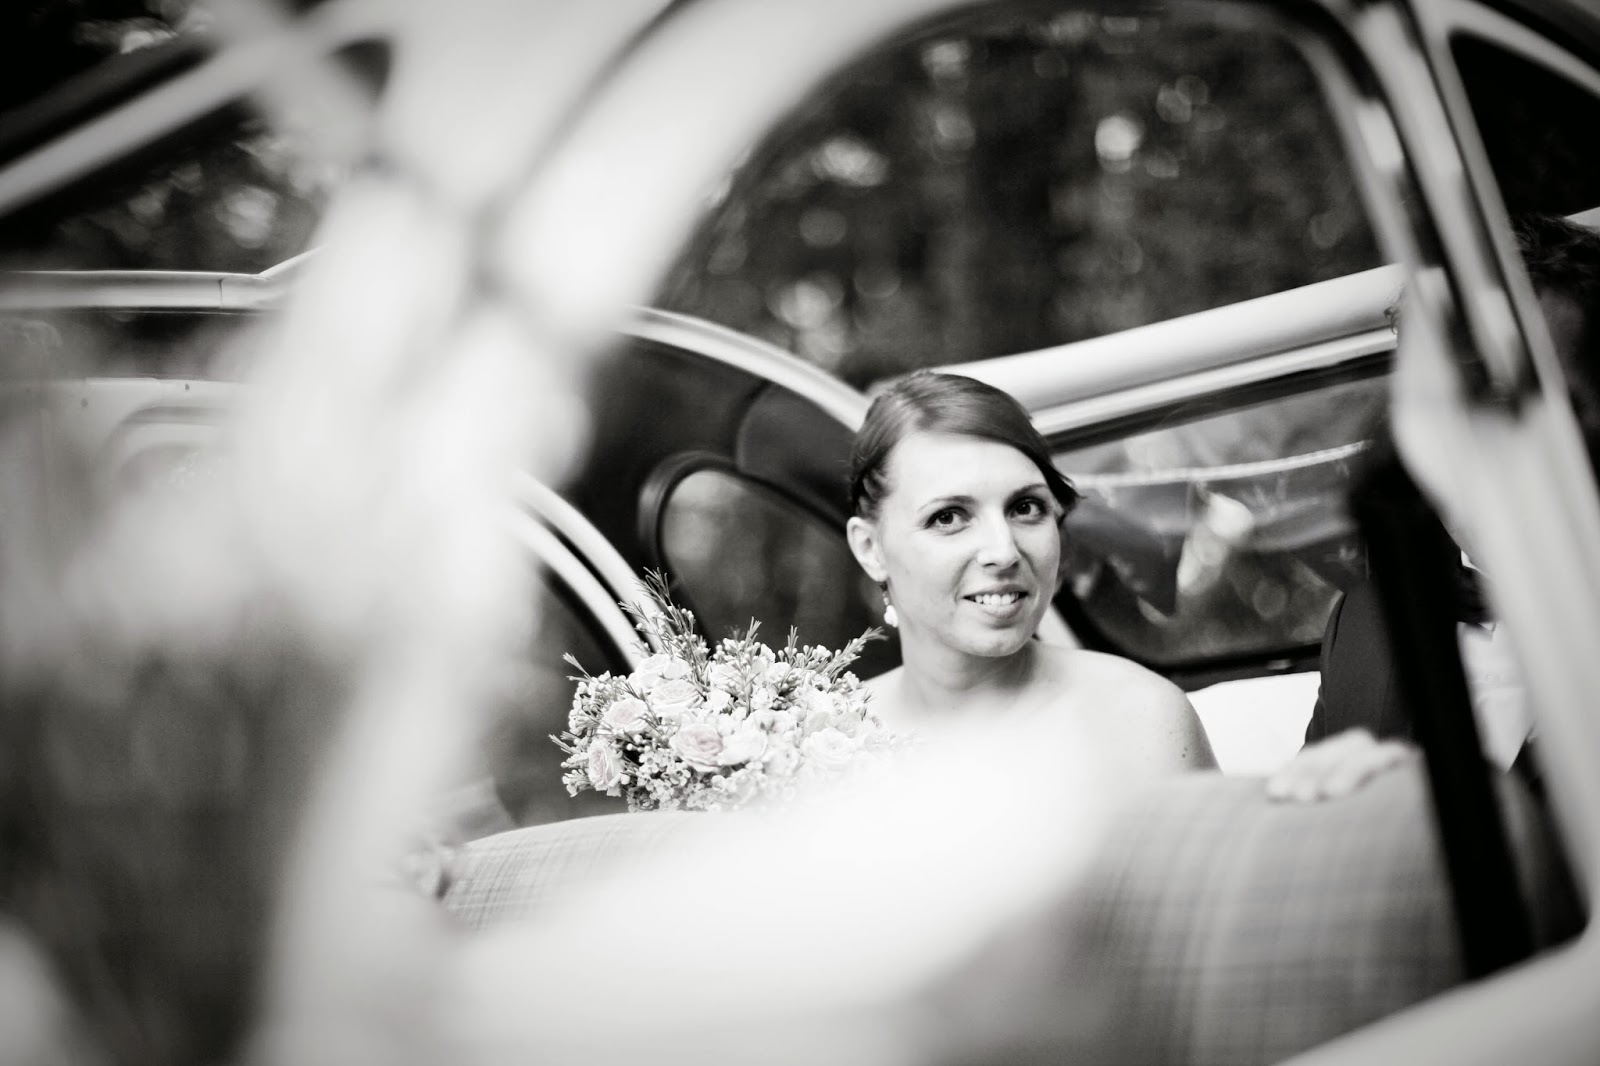 The bride in vintage French car - Wedding photography by Elisabeth Perotin